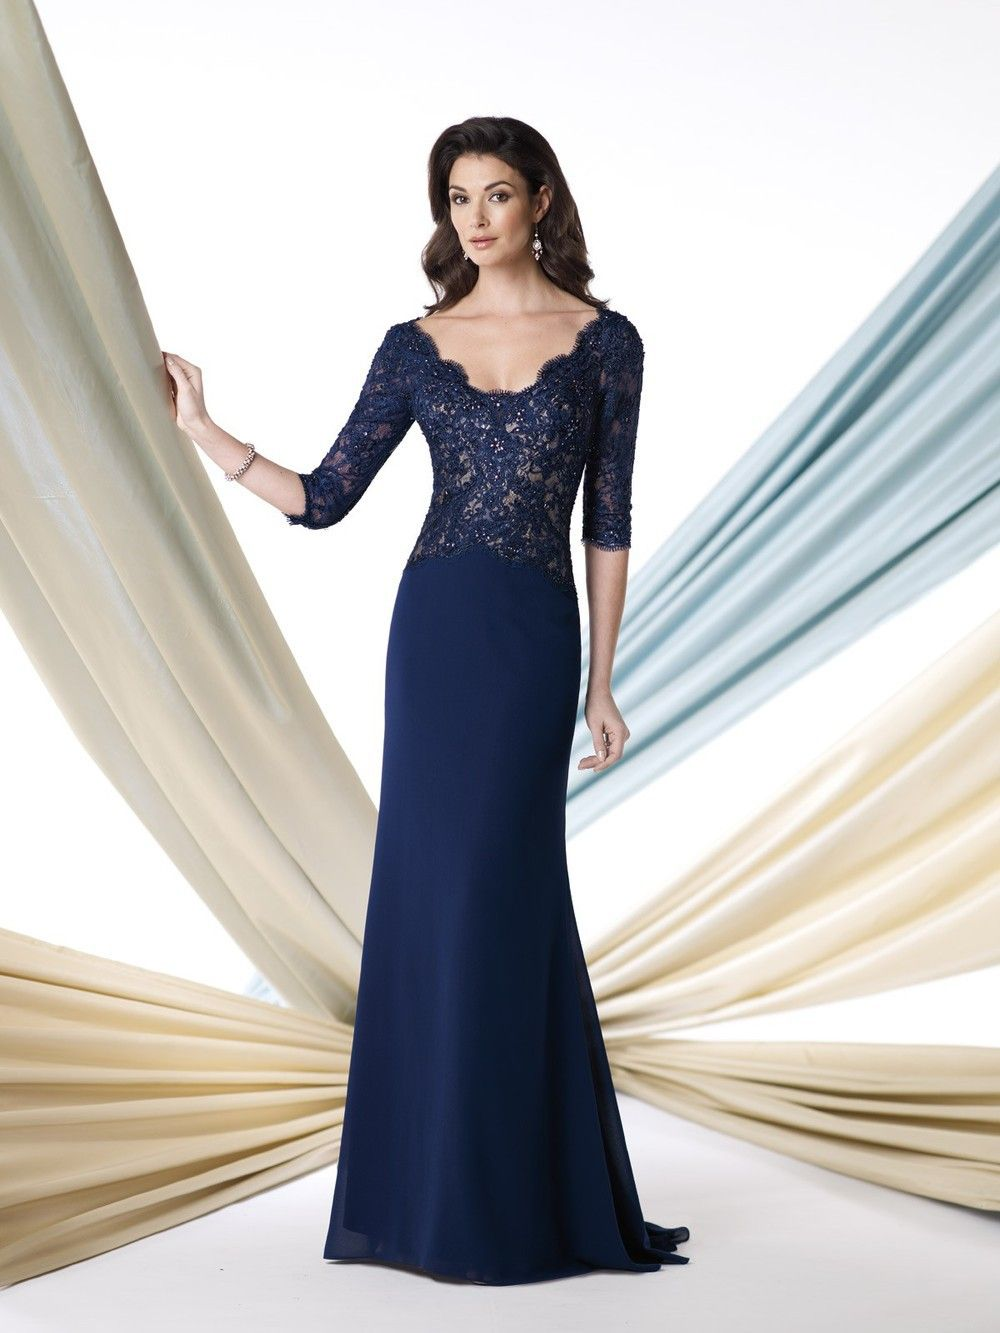 b377d58e31 elegant style custom made royal blue long lace evening dress mother of the bride  dresses with sleeves